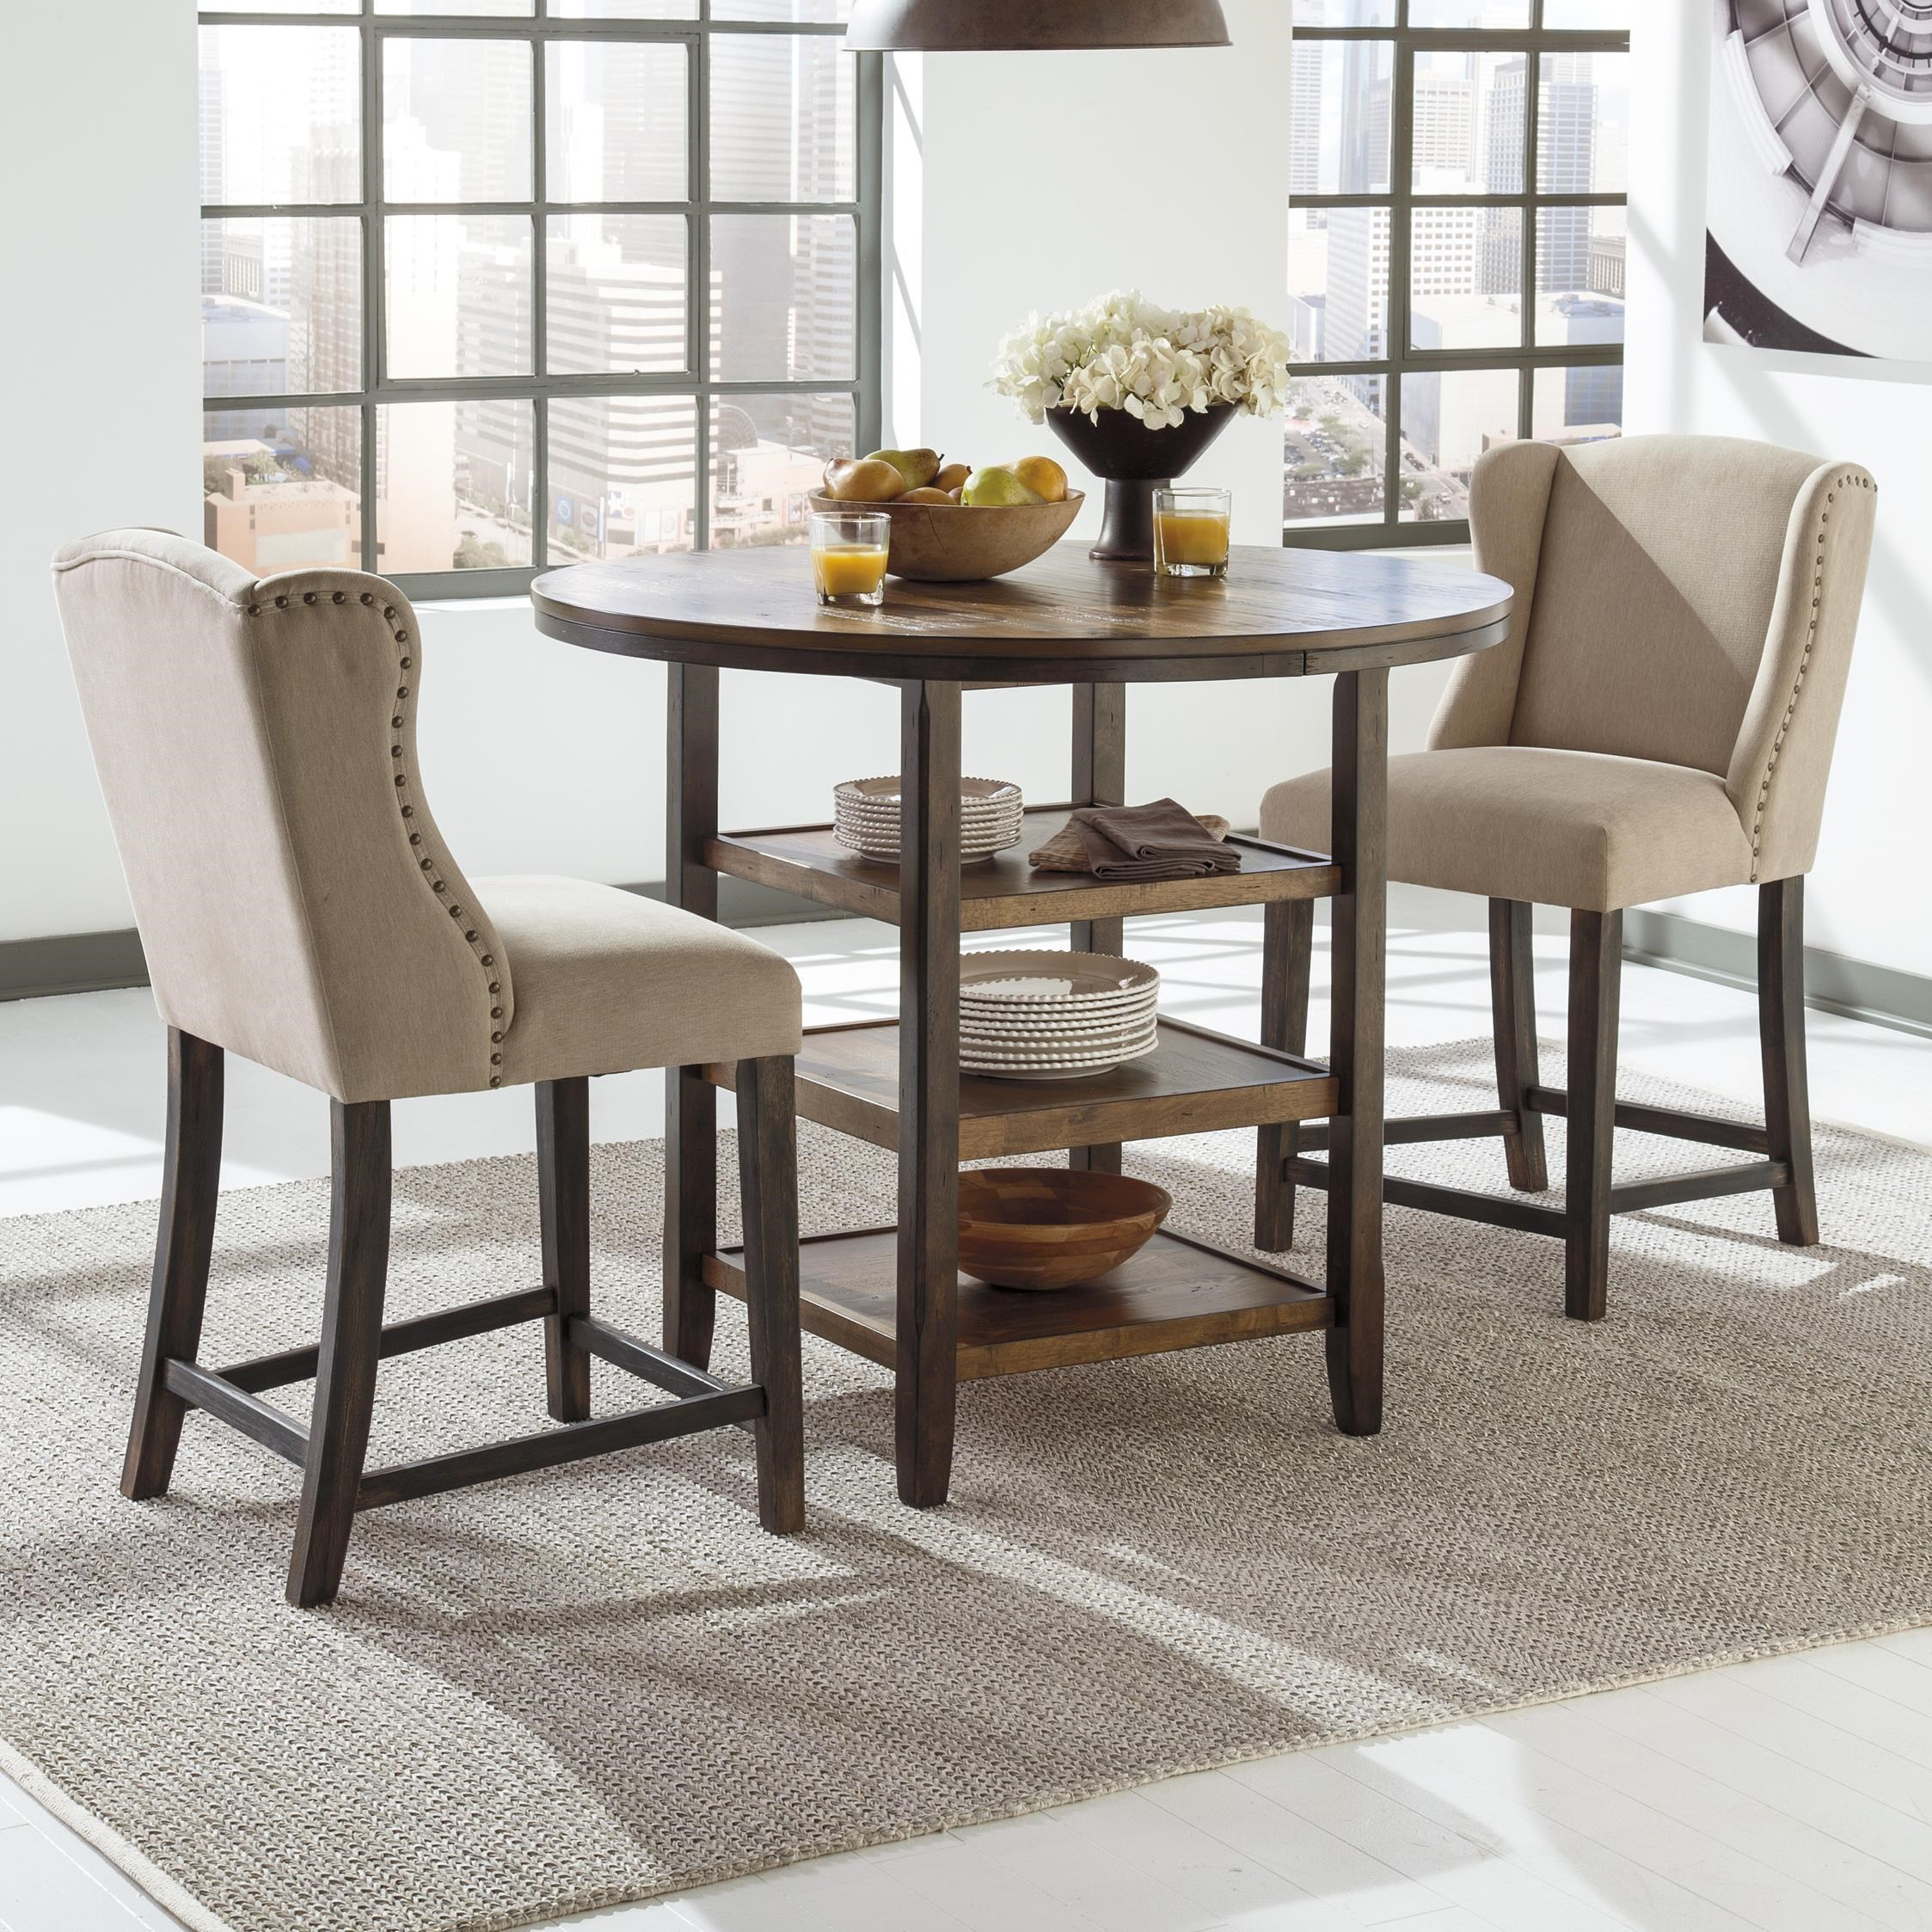 Delicieux Signature Design By Ashley Moriann3 Piece Counter Table Set ...